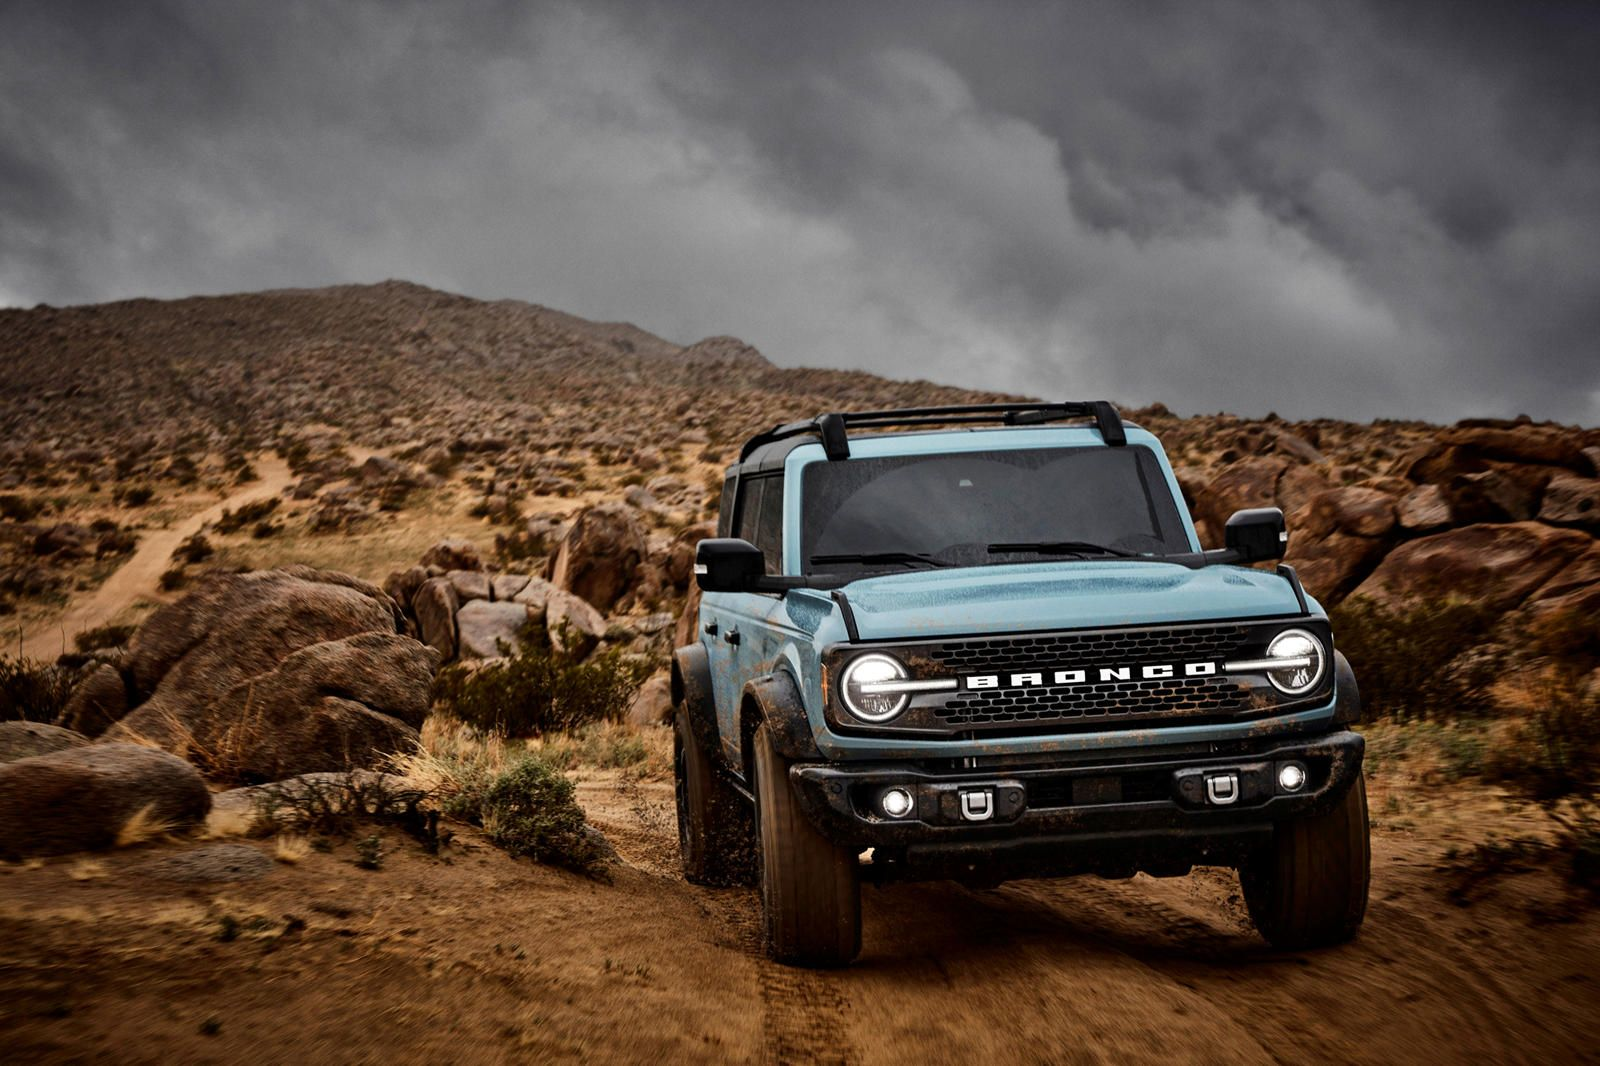 Ford Bronco Vs Jeep Wrangler How Do They Compare Let The 4x4 Rivalry Commence In 2020 Ford Bronco Bronco Sports Bronco